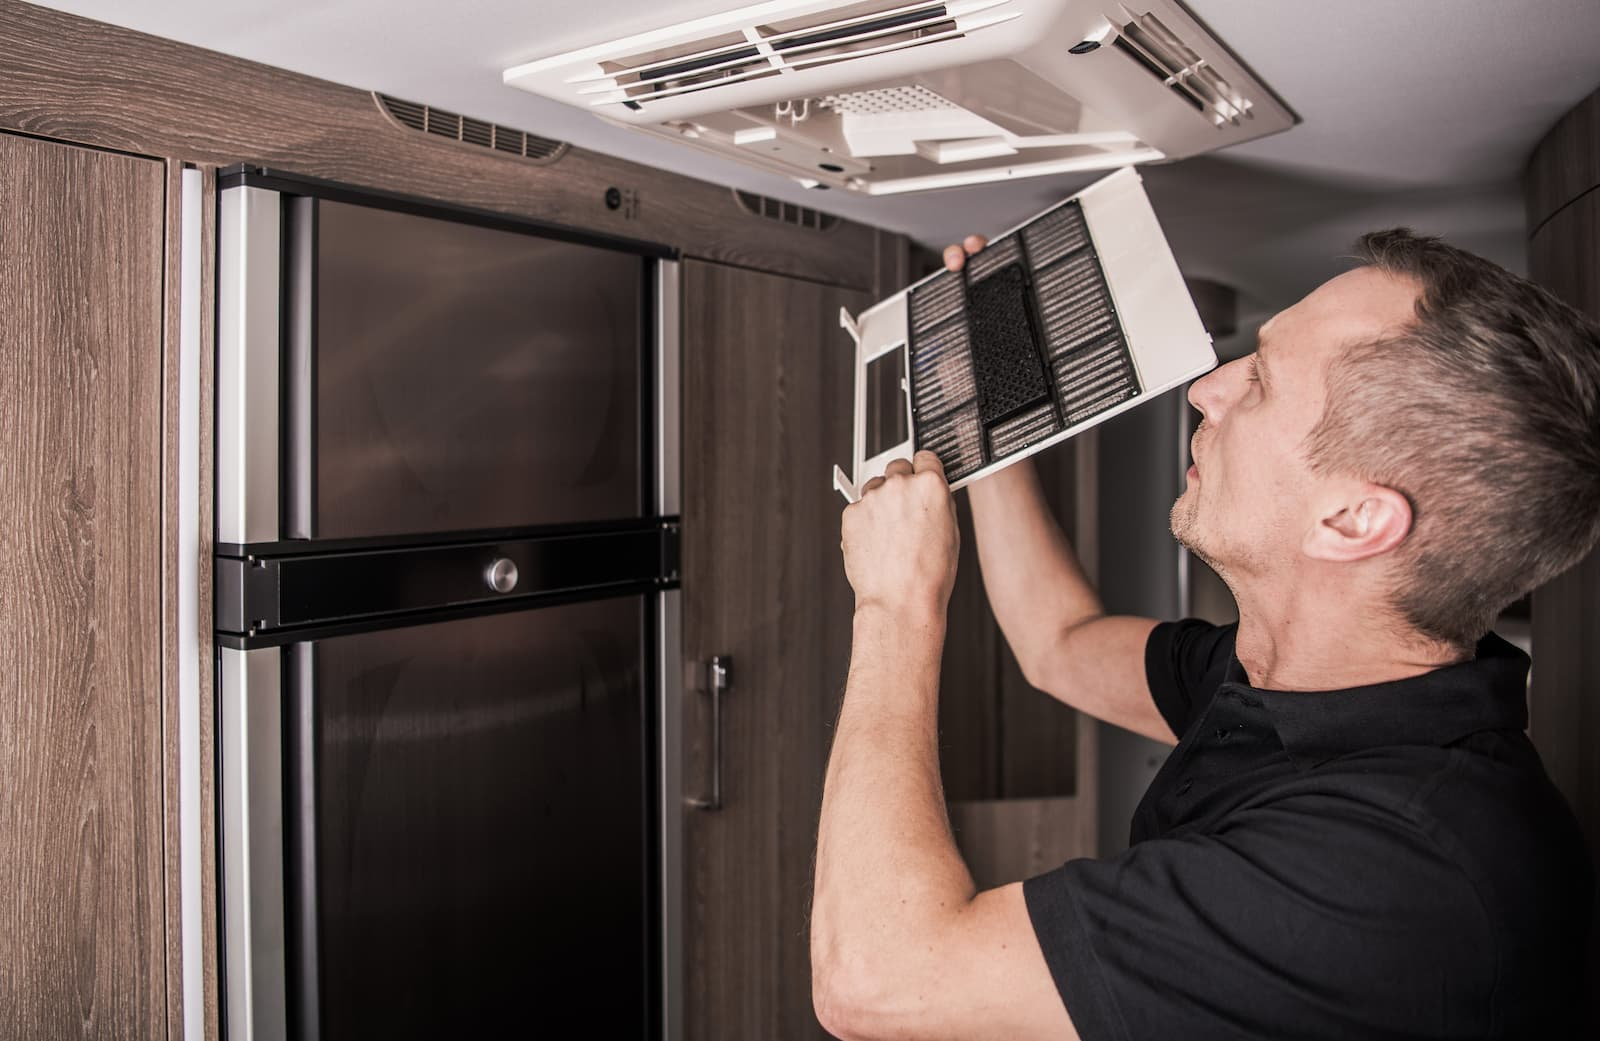 The 20 Best RV Upgrades [From Cheap to Expensive]